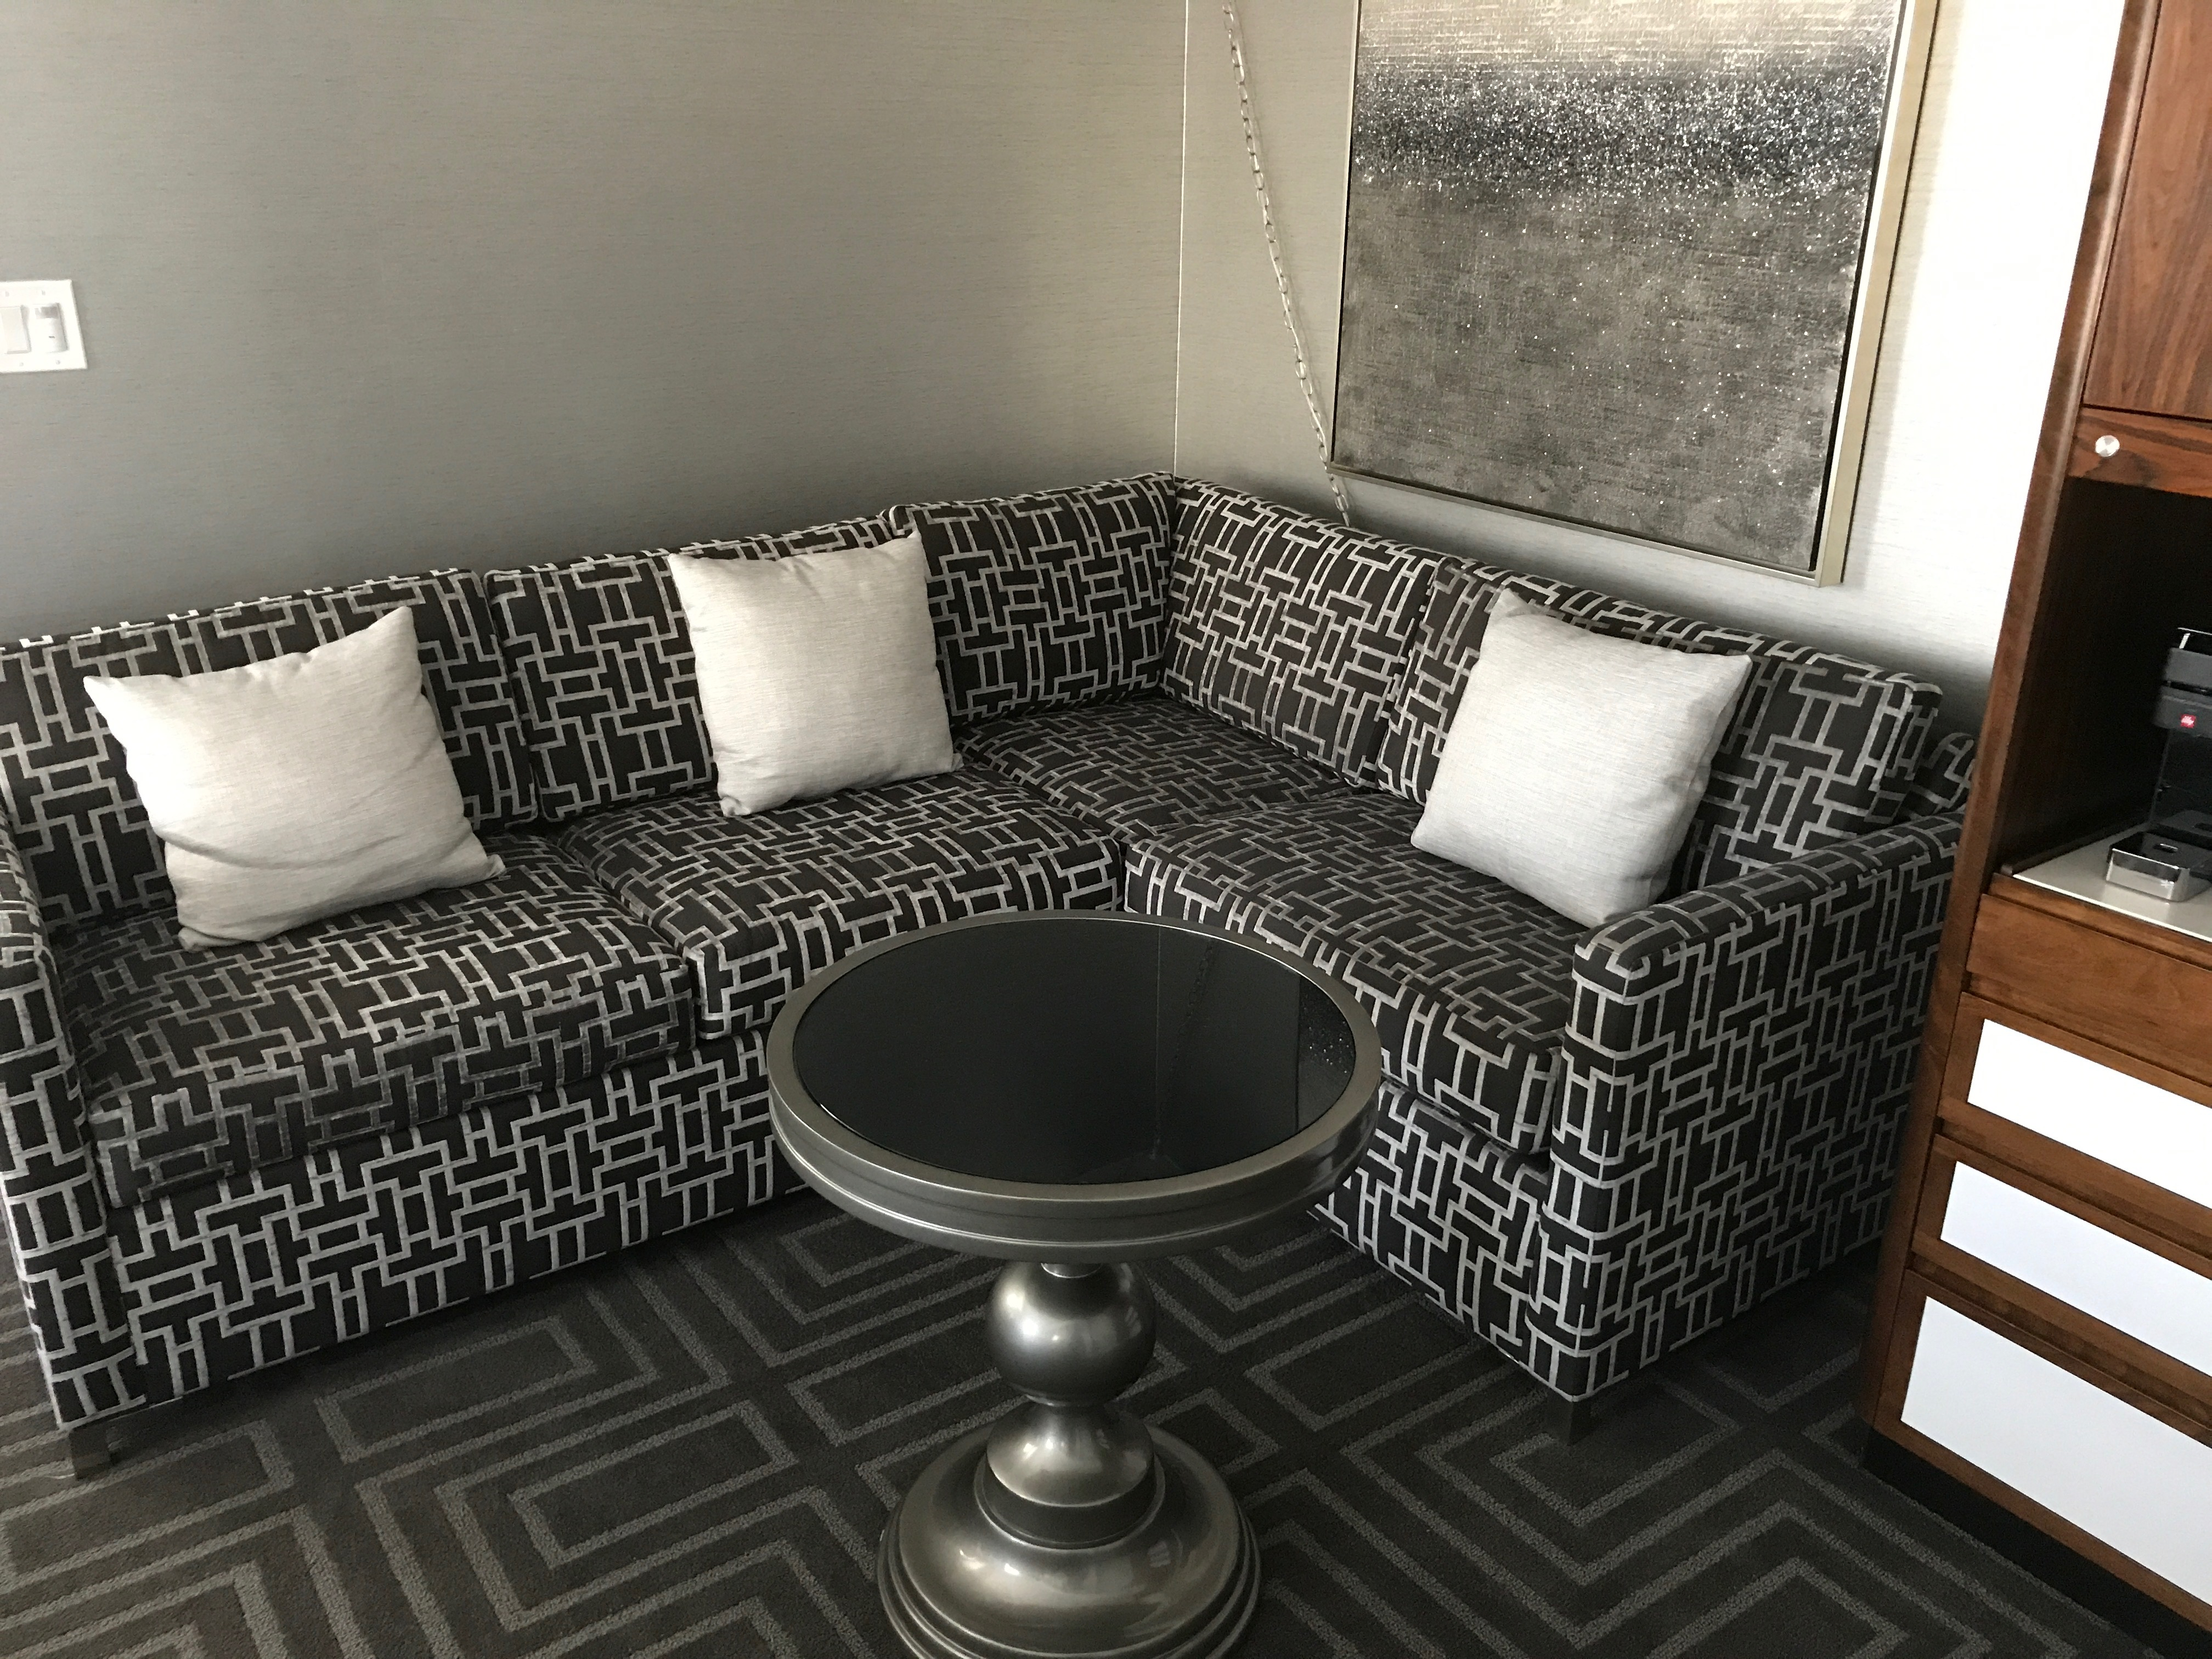 JW Marriott San Francisco suite table and couch